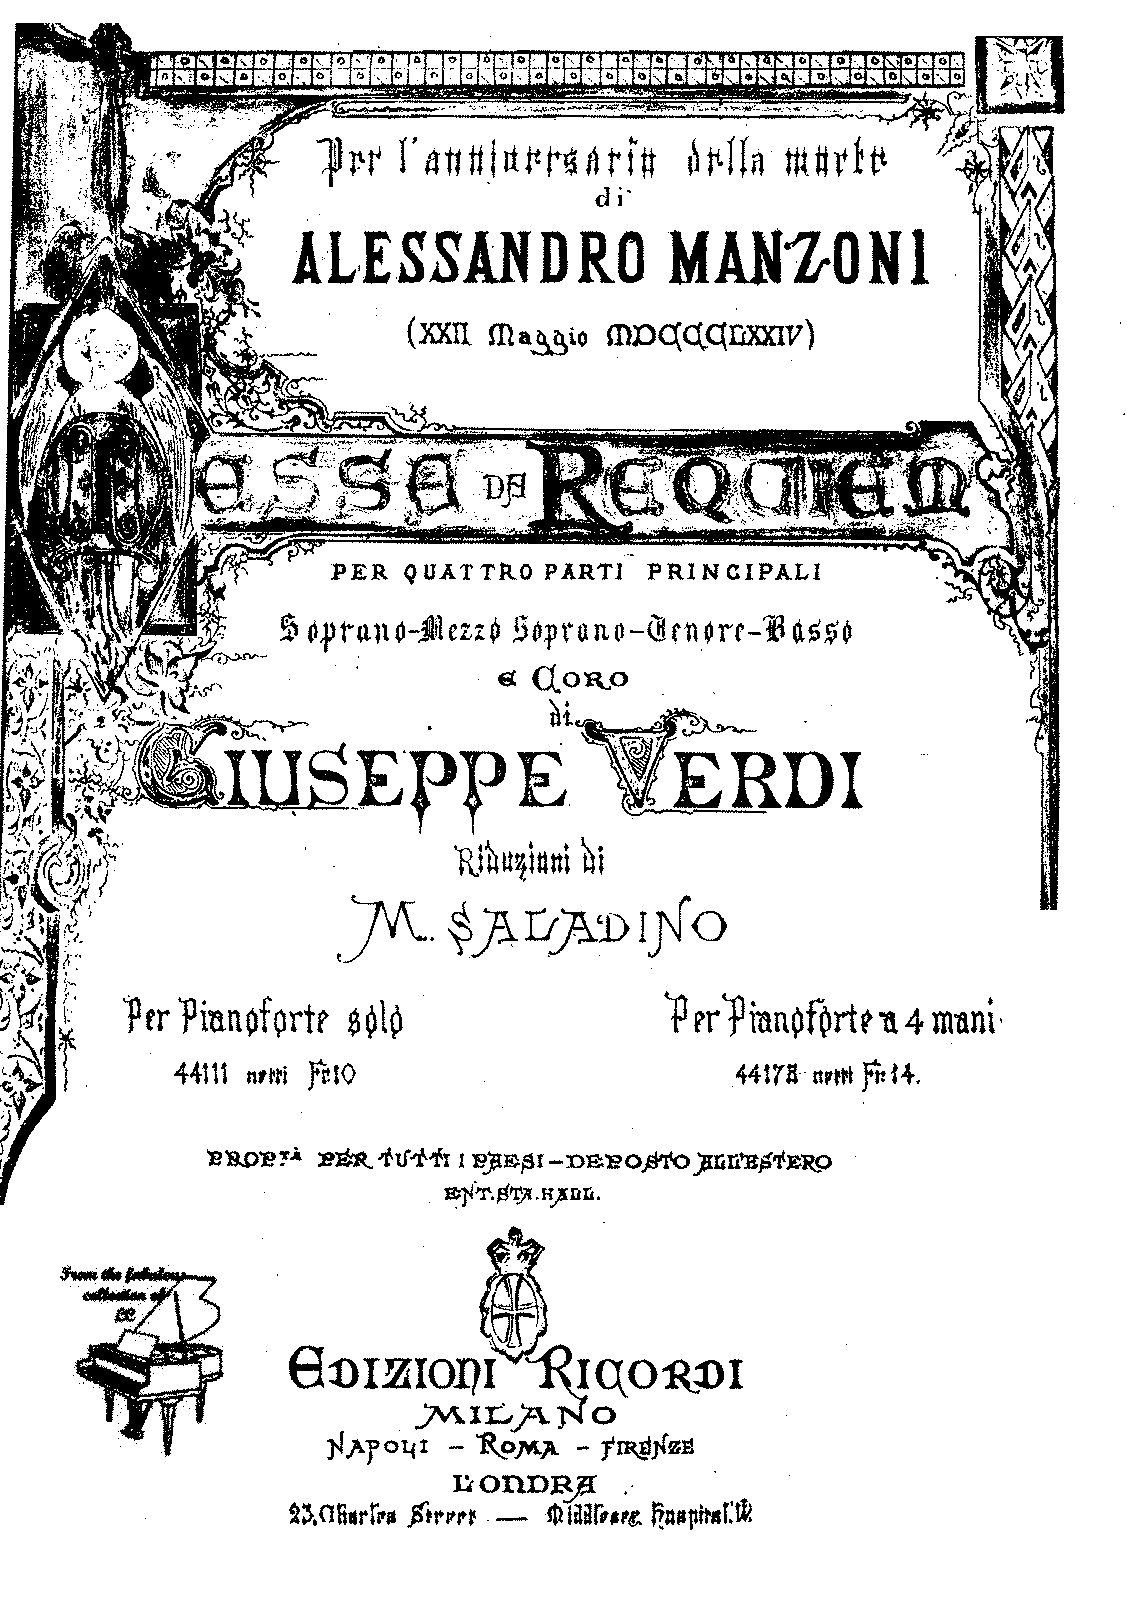 PMLP01812-Verdi - Requiem - 1874 version (2H Saladino).pdf